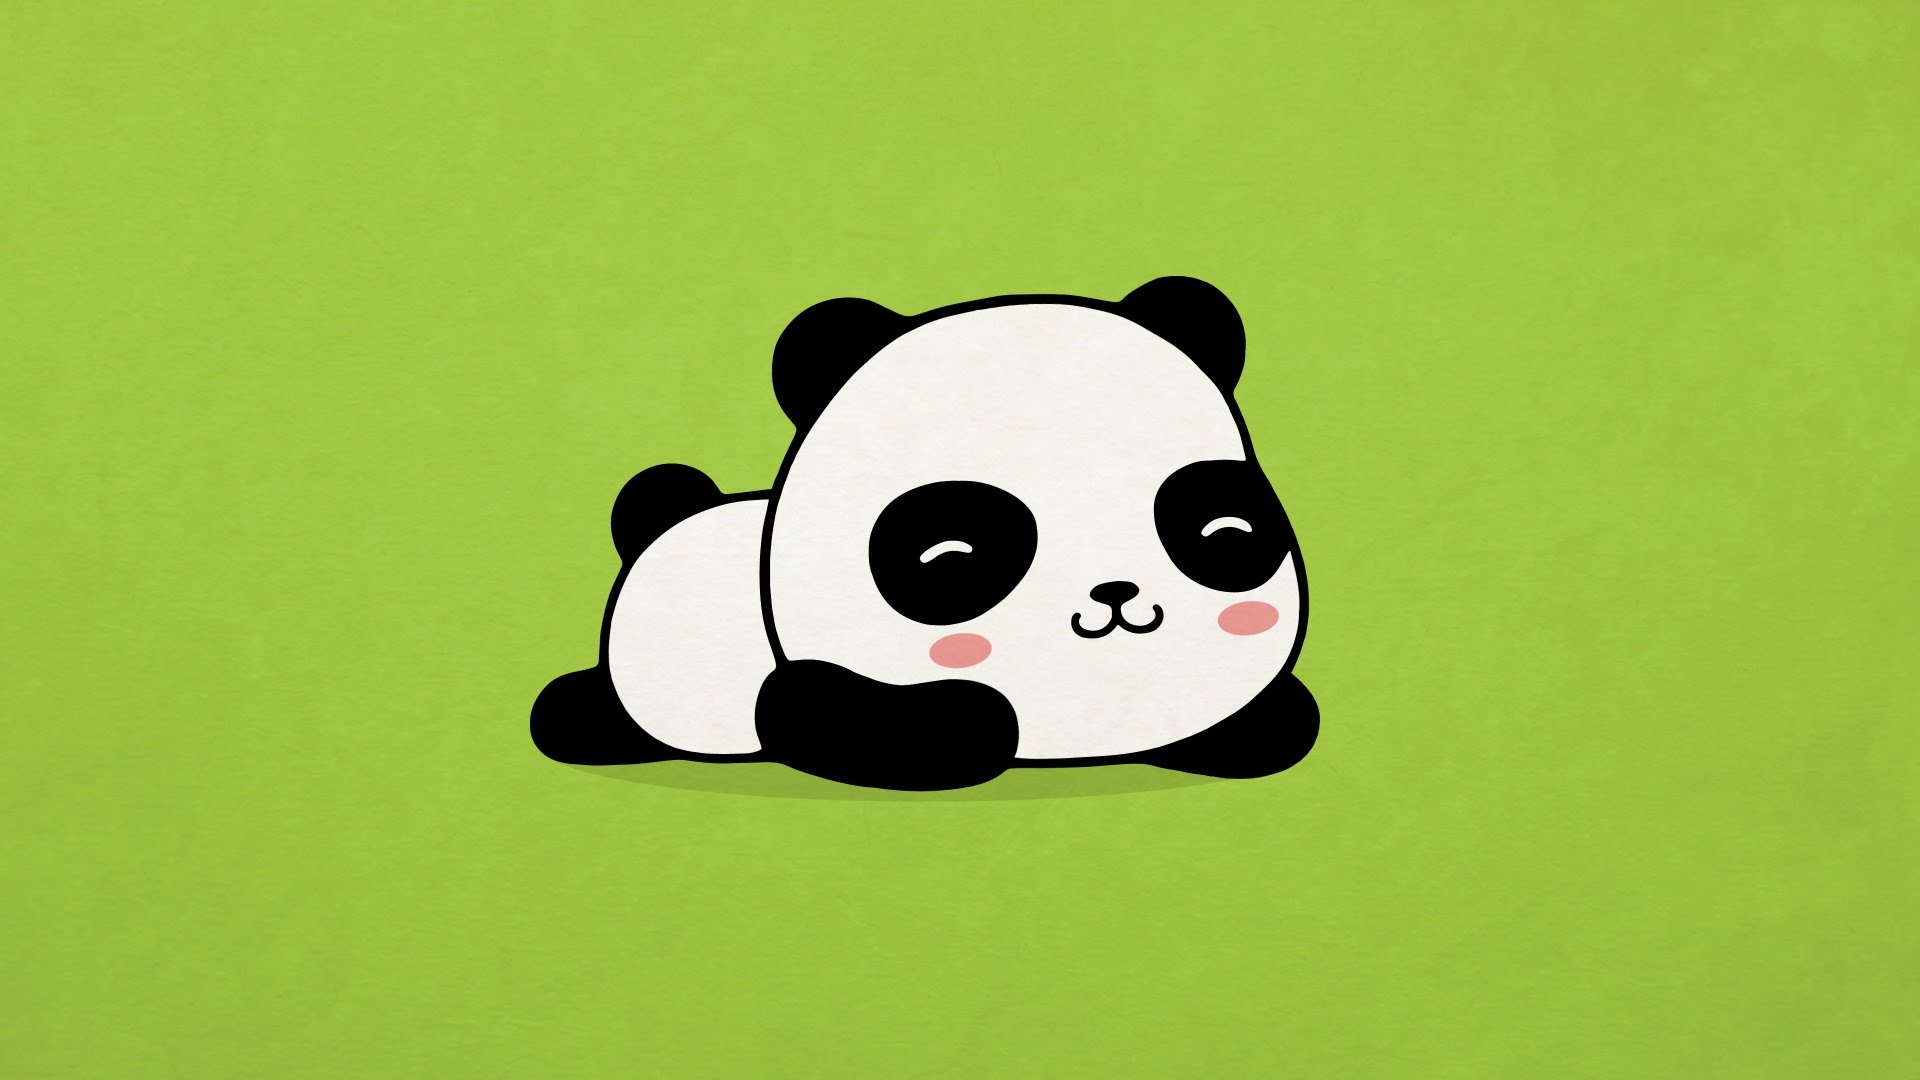 1920x1080 How To Draw A Cute Sleepy Panda